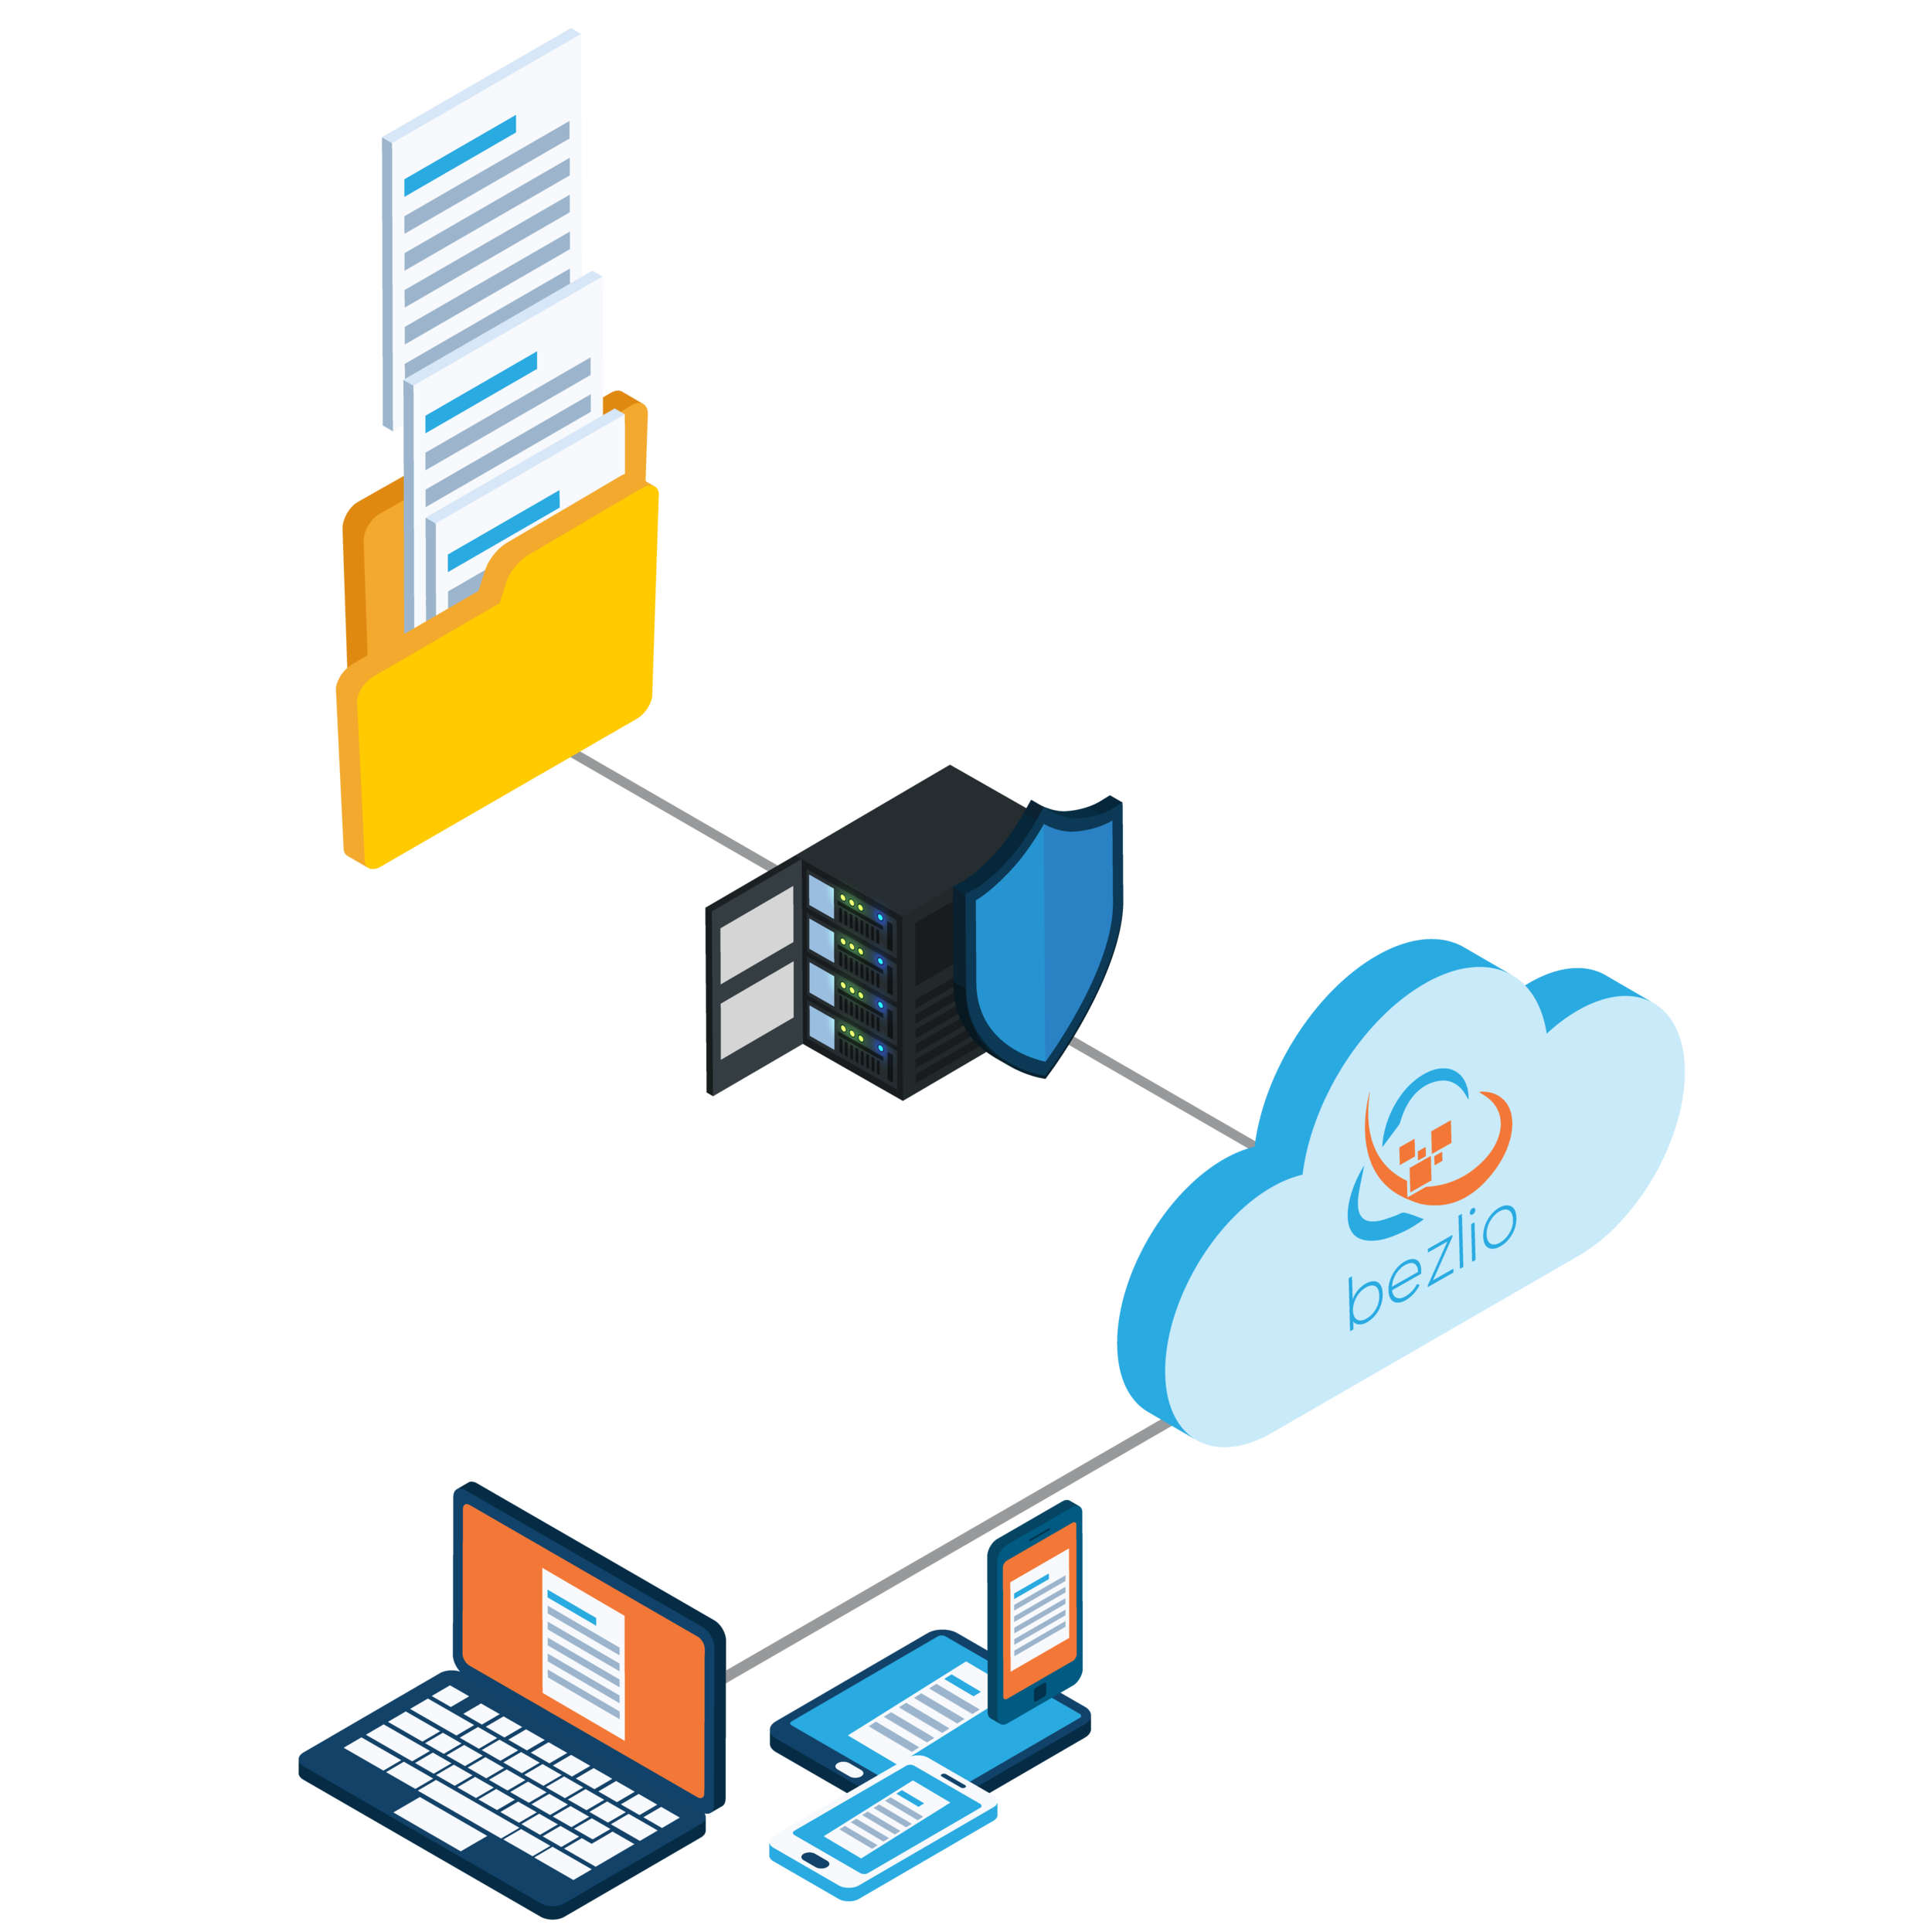 An illustration of how administrators can drop Crystal Reports RPT files into a folder behind the company firewall and the end user can view the Crystal Reports in a web browser on their laptop, tablet or mobile phone.